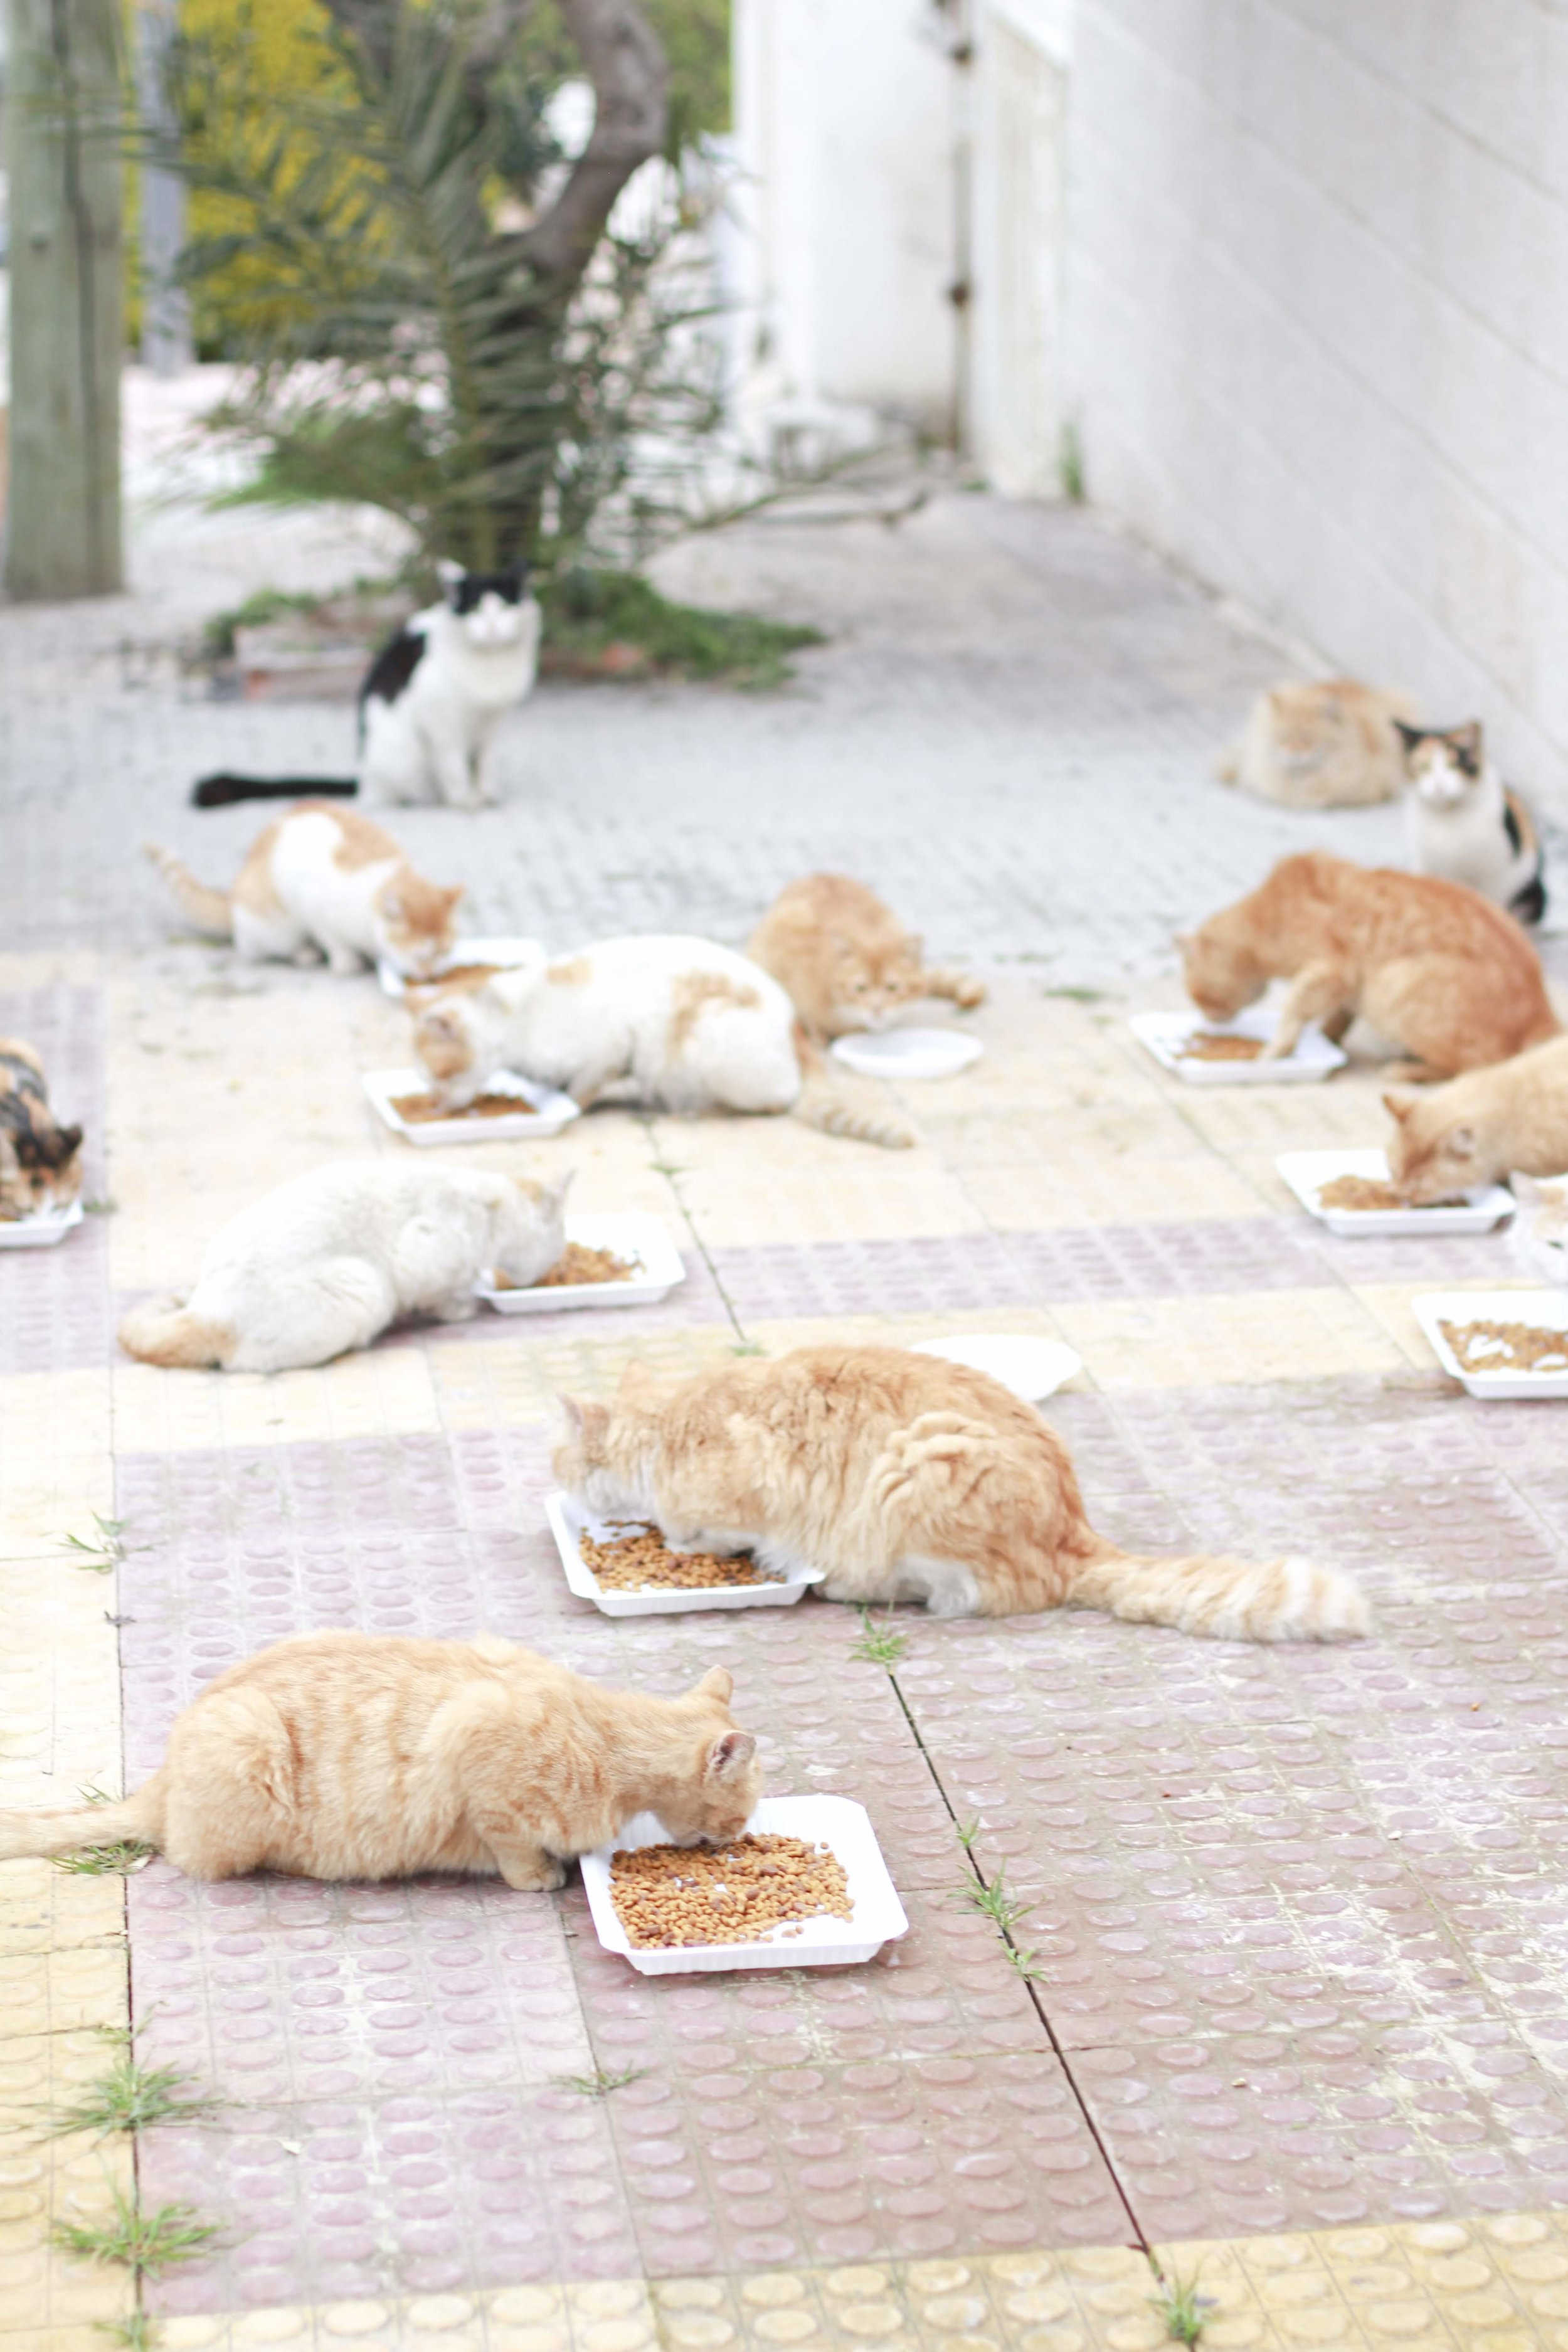 These stray cats have been all neutered and returned to their original street homes. Nina feeds them regularly and monitors if there are any in need of medical assistance, which she will ensure they get.